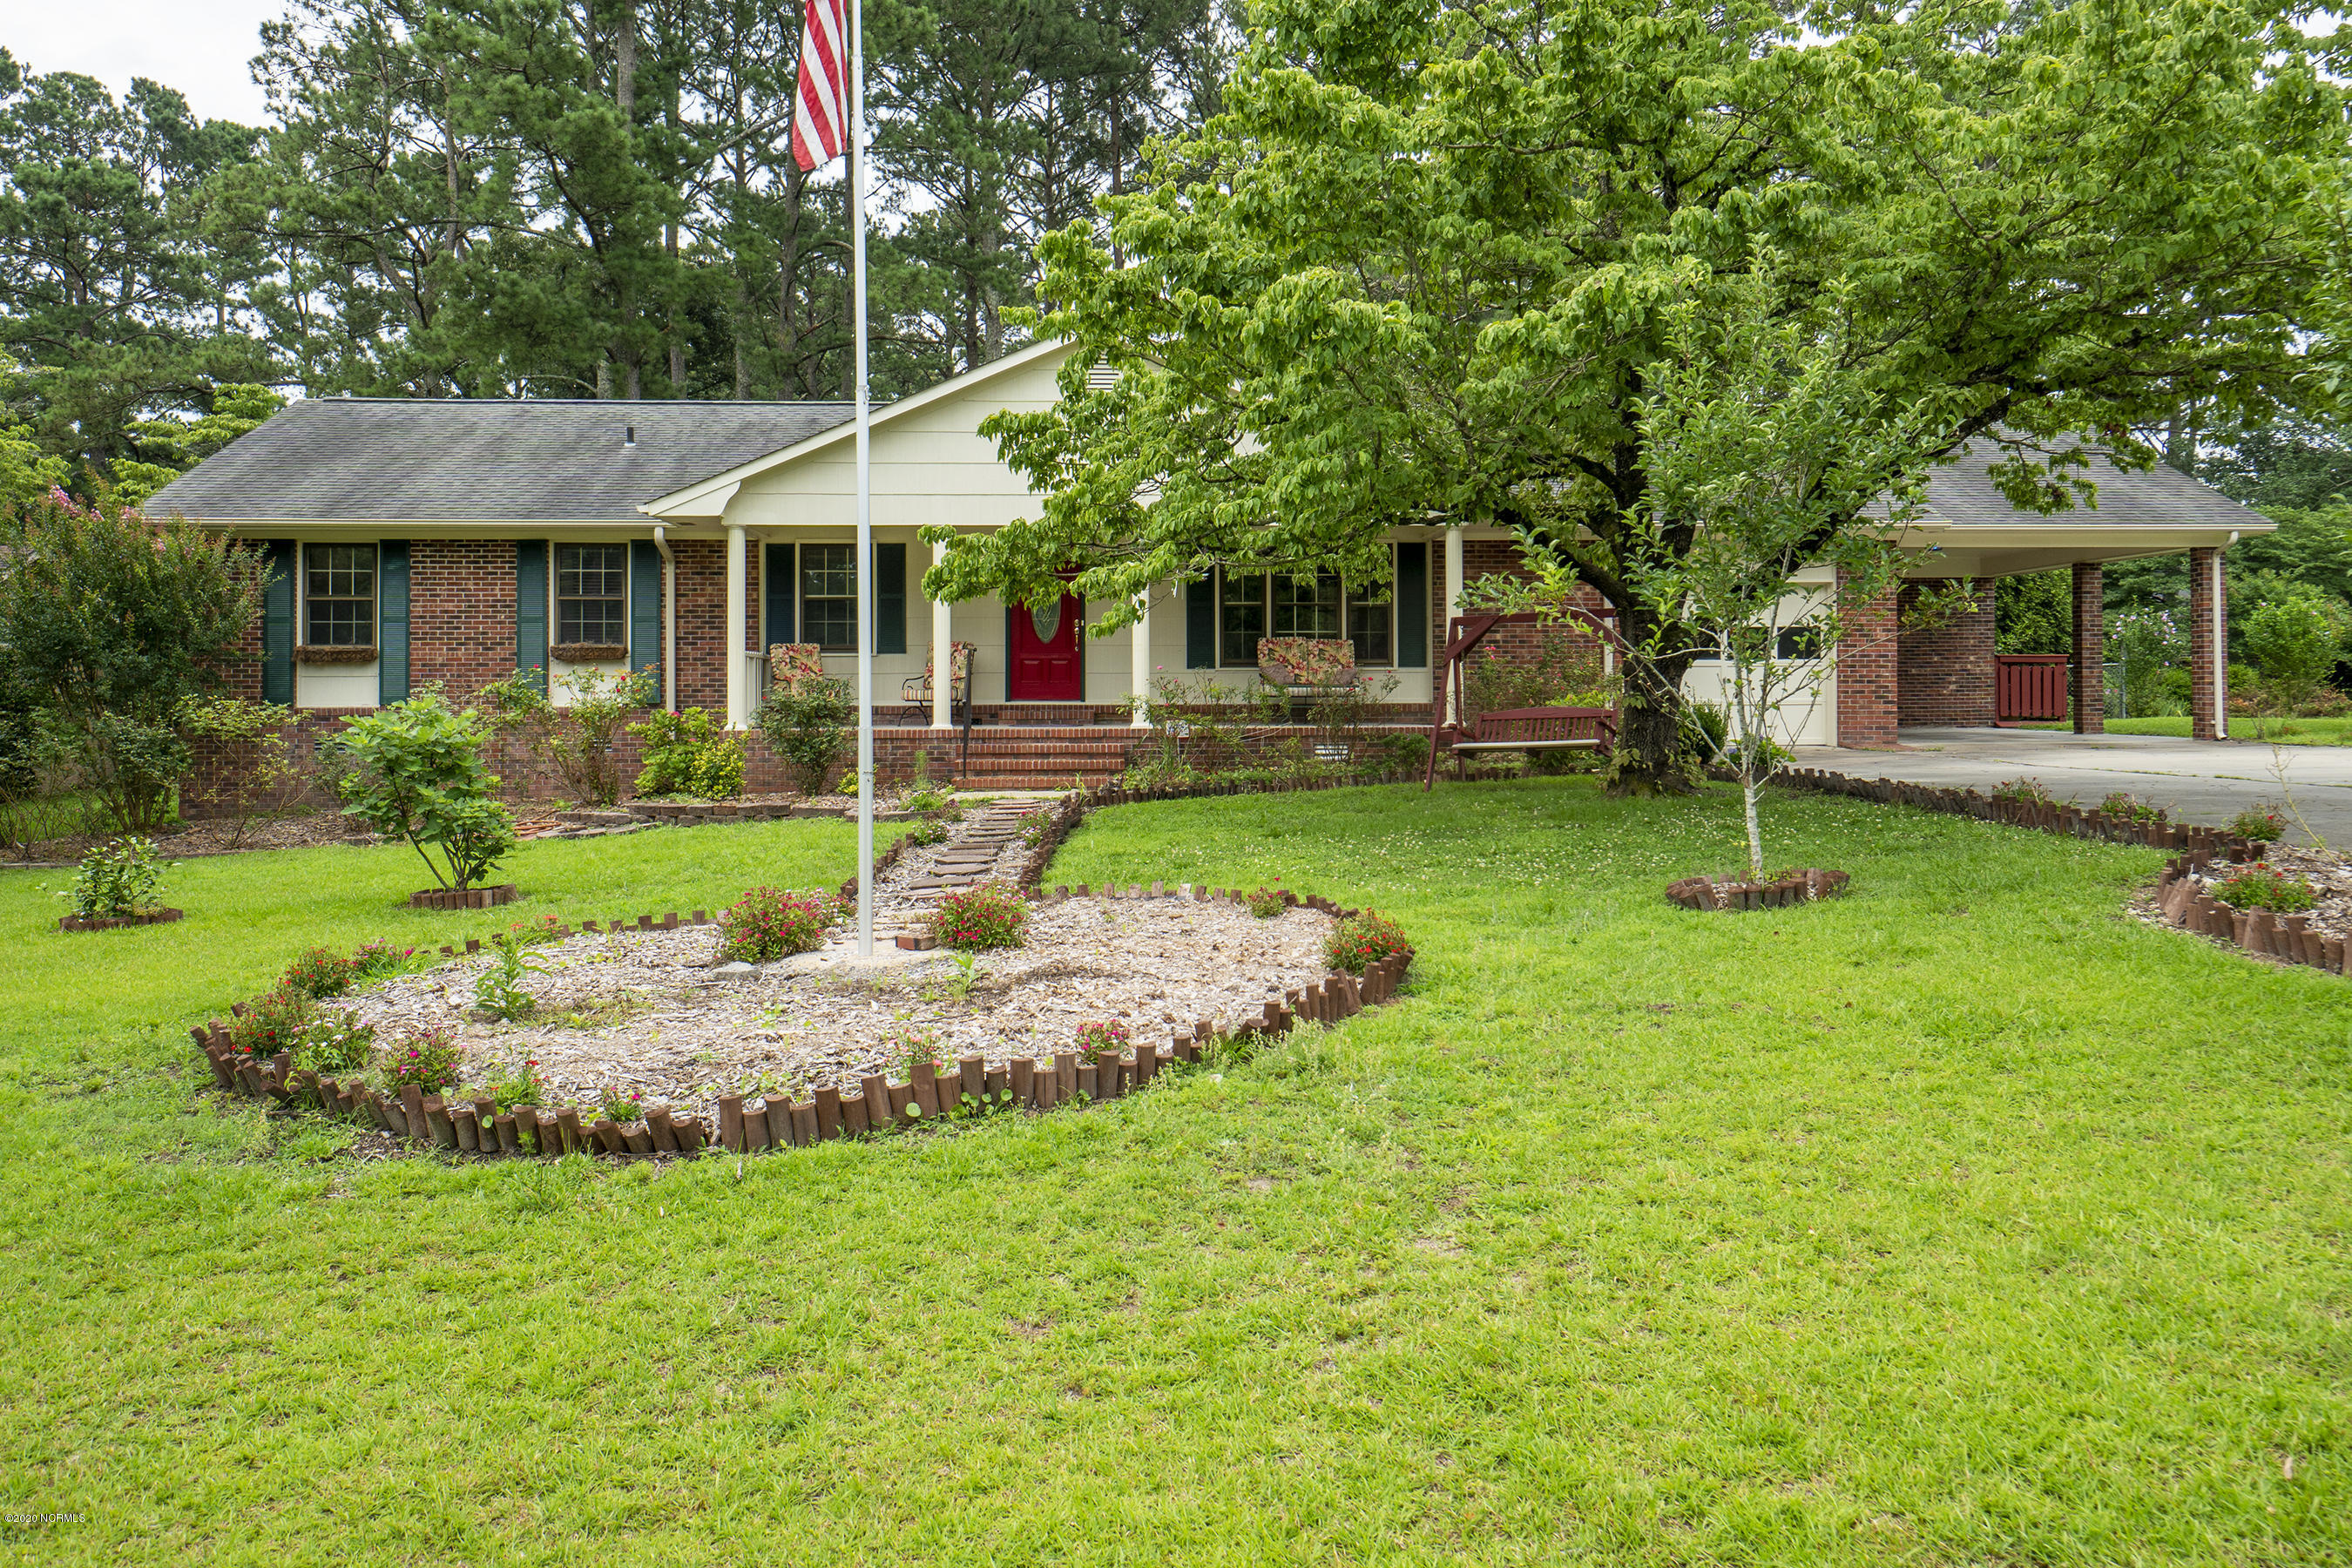 211 Rockledge Road, New Bern, North Carolina 28562, 3 Bedrooms Bedrooms, 9 Rooms Rooms,2 BathroomsBathrooms,Single family residence,For sale,Rockledge,100223690